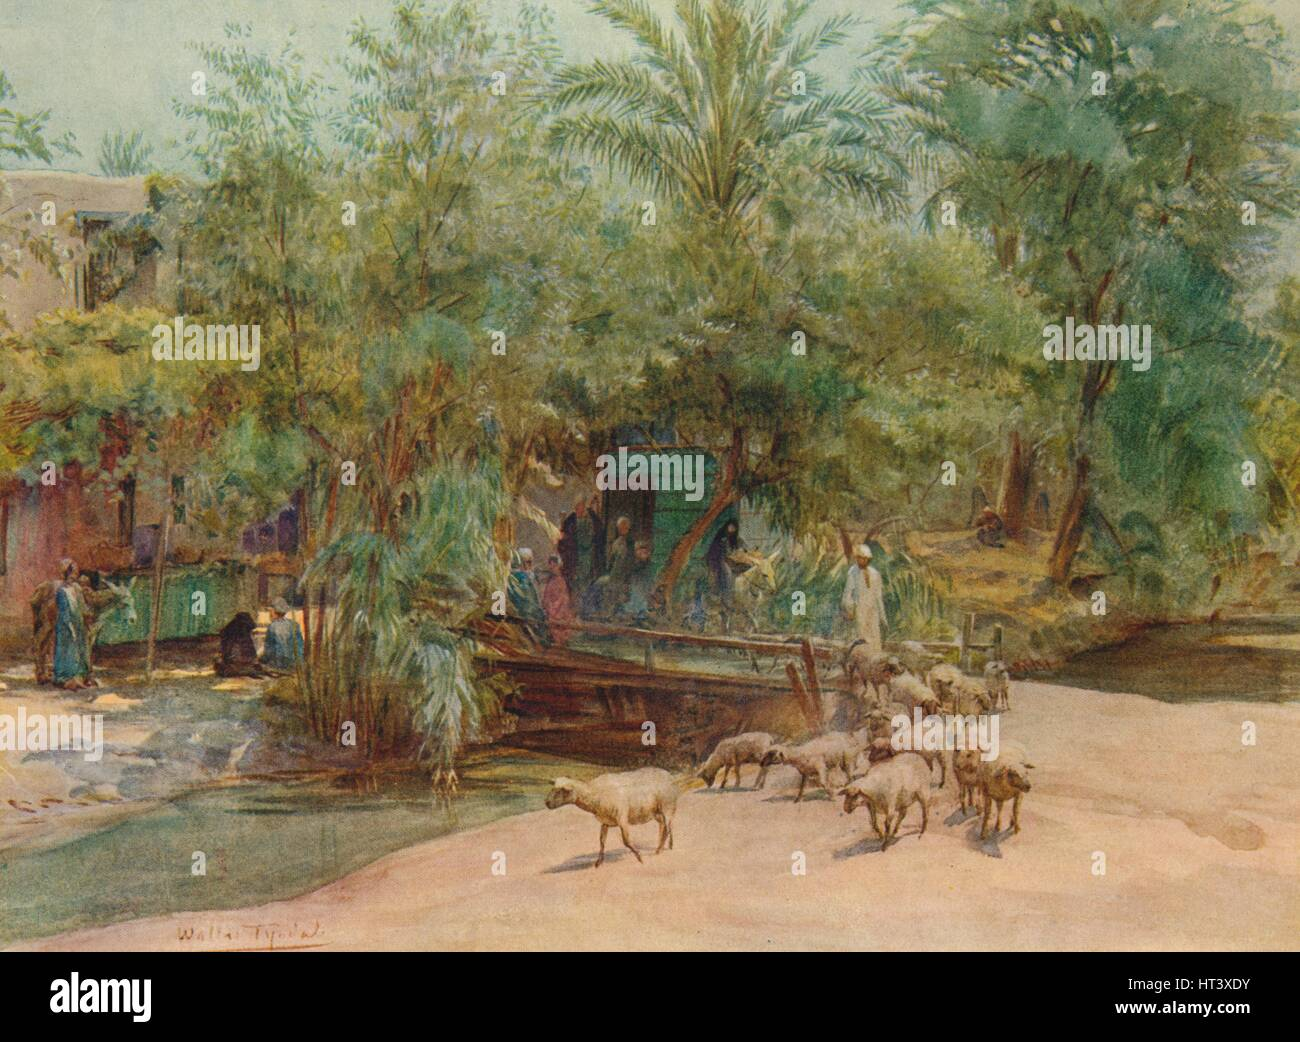 'The Village of Marg', c1905, (1912). Artist: Walter Frederick Roofe Tyndale. - Stock Image